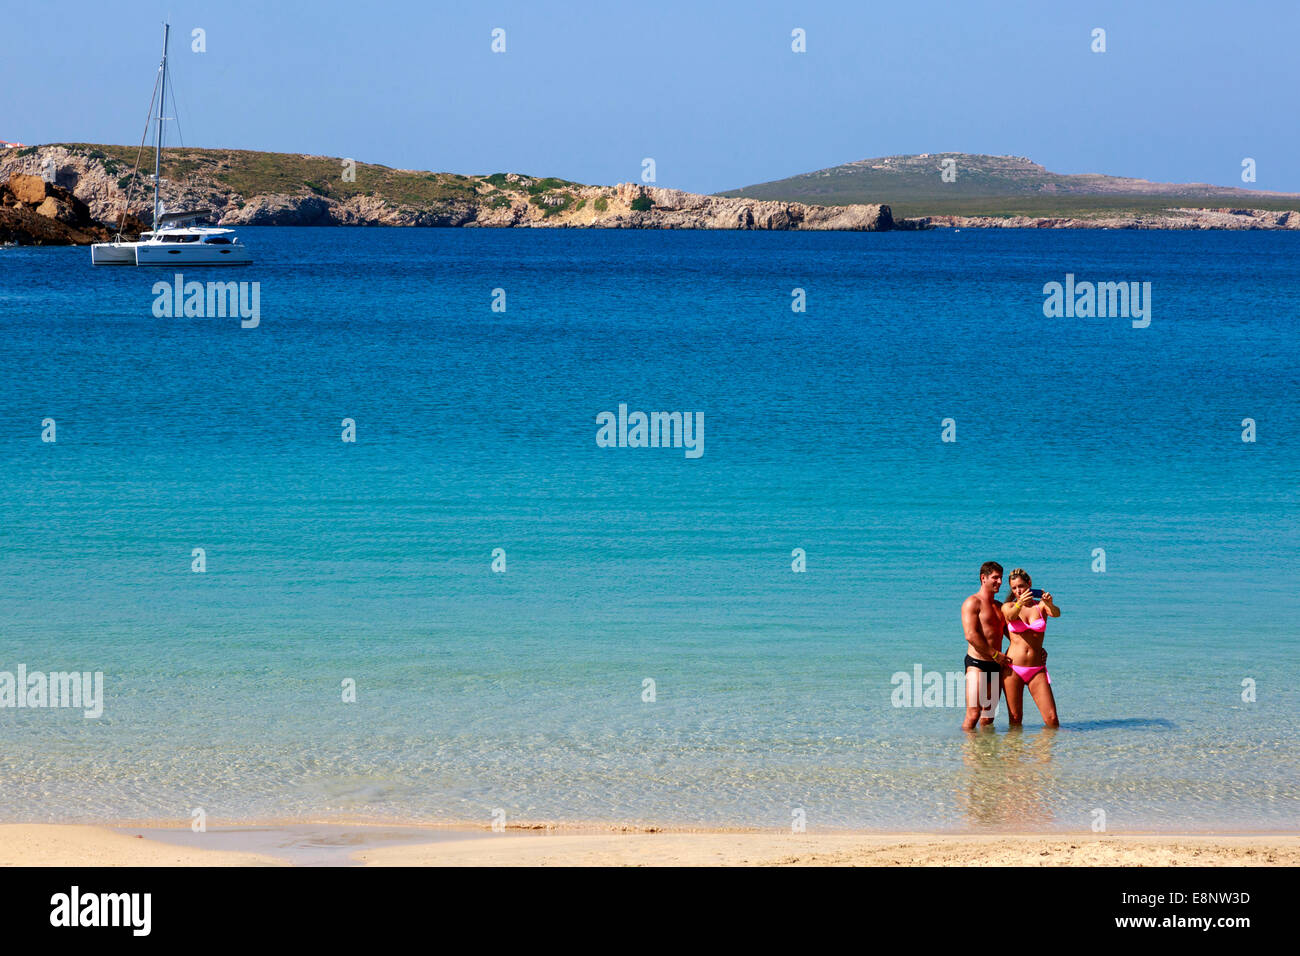 Man and woman on holiday taking a 'selfie' photograph while standing in the sea at Arenal d'en Castell, - Stock Image